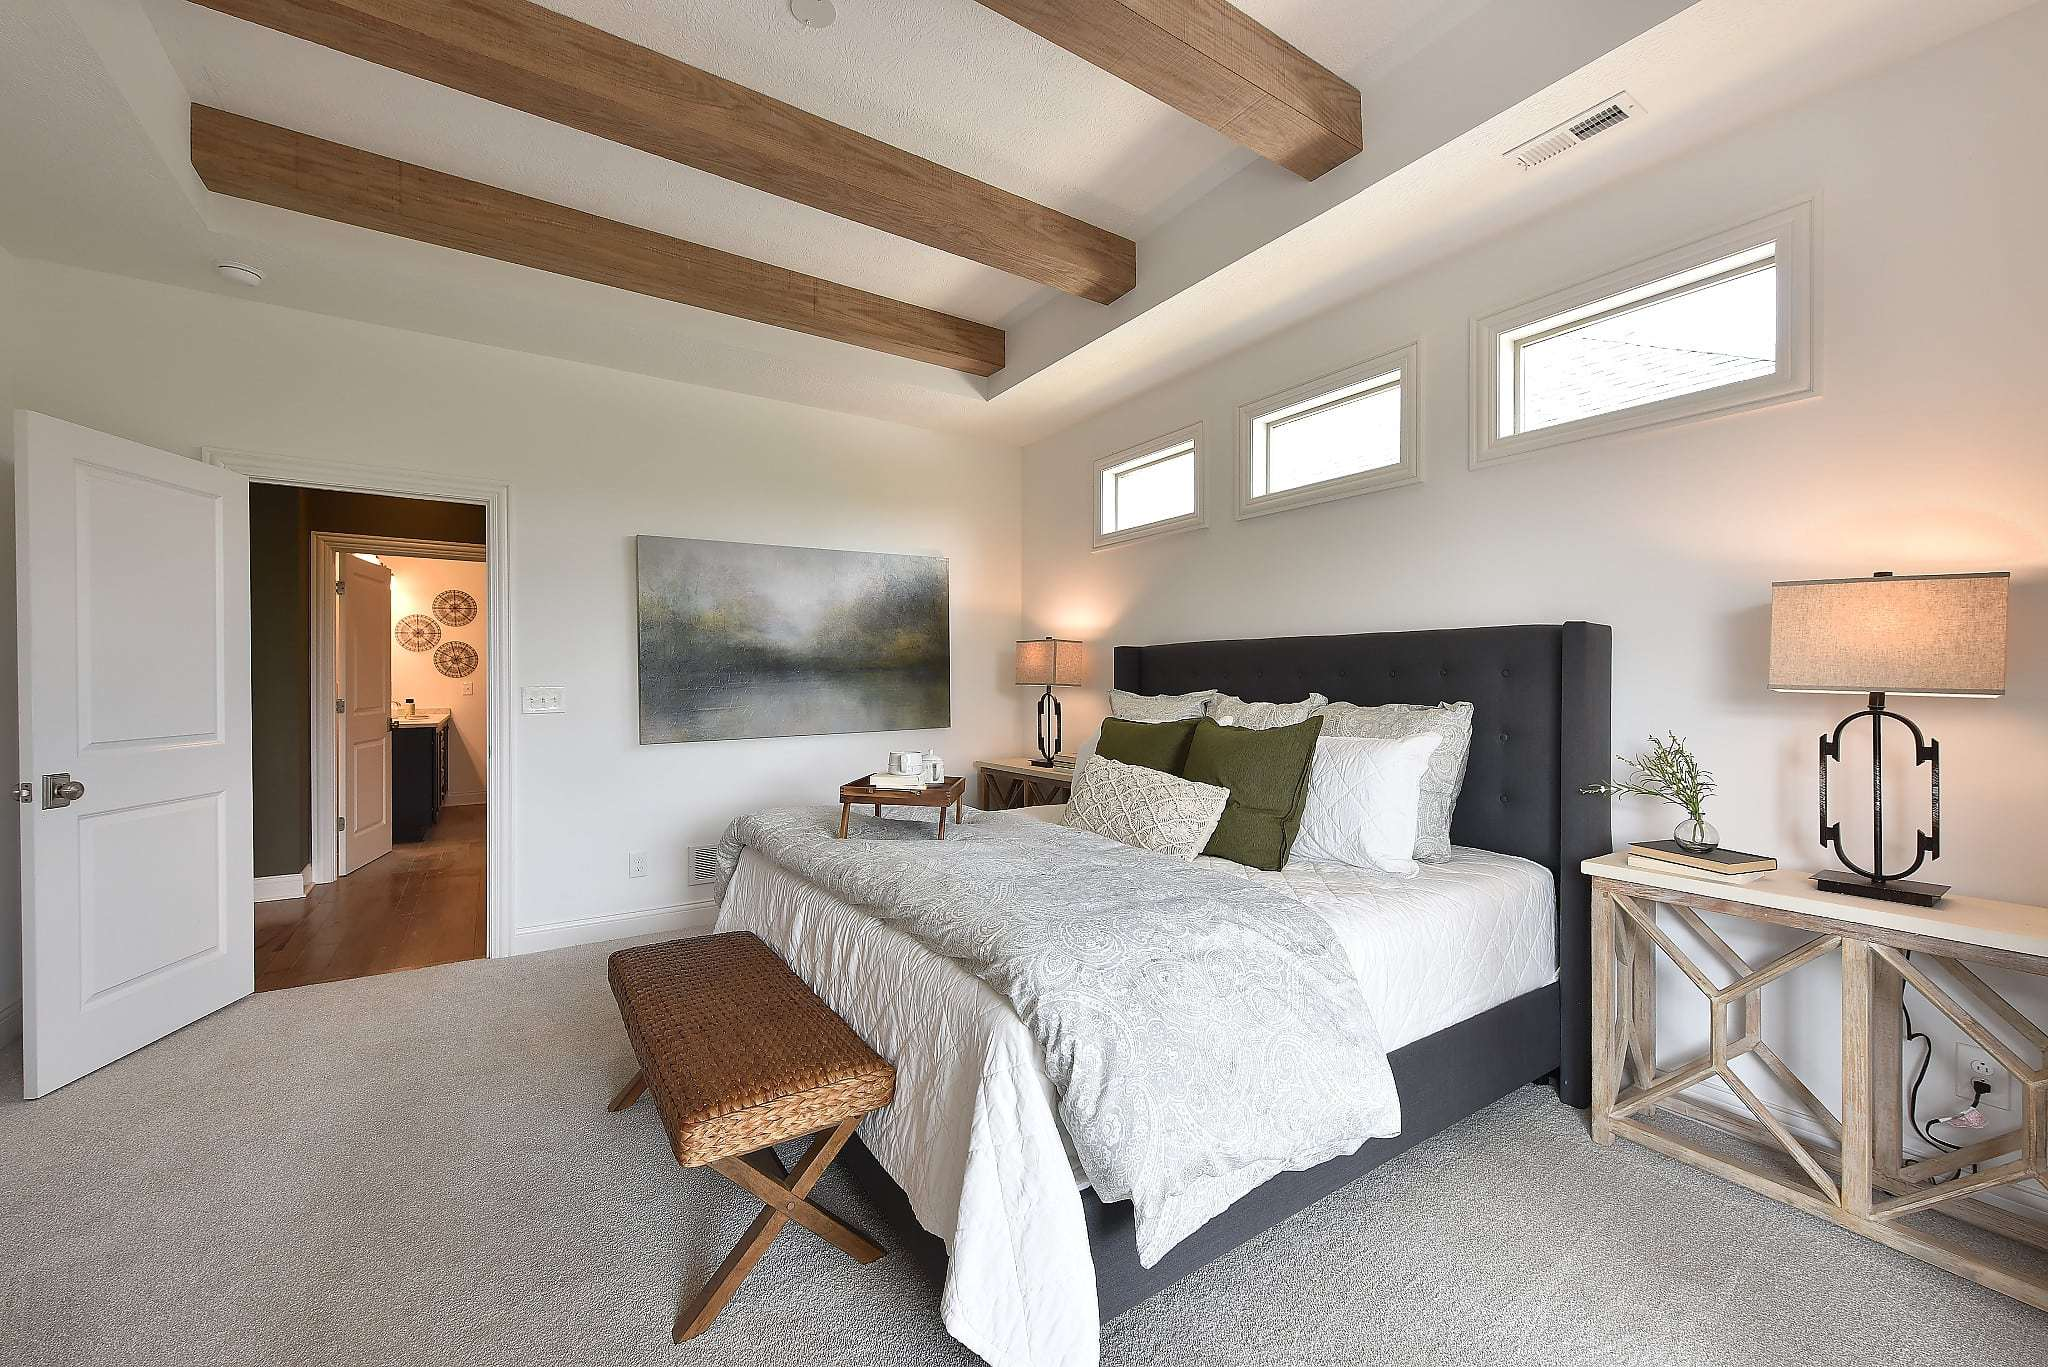 Bedroom featured in the Torino By Epcon Communities in Columbus, OH